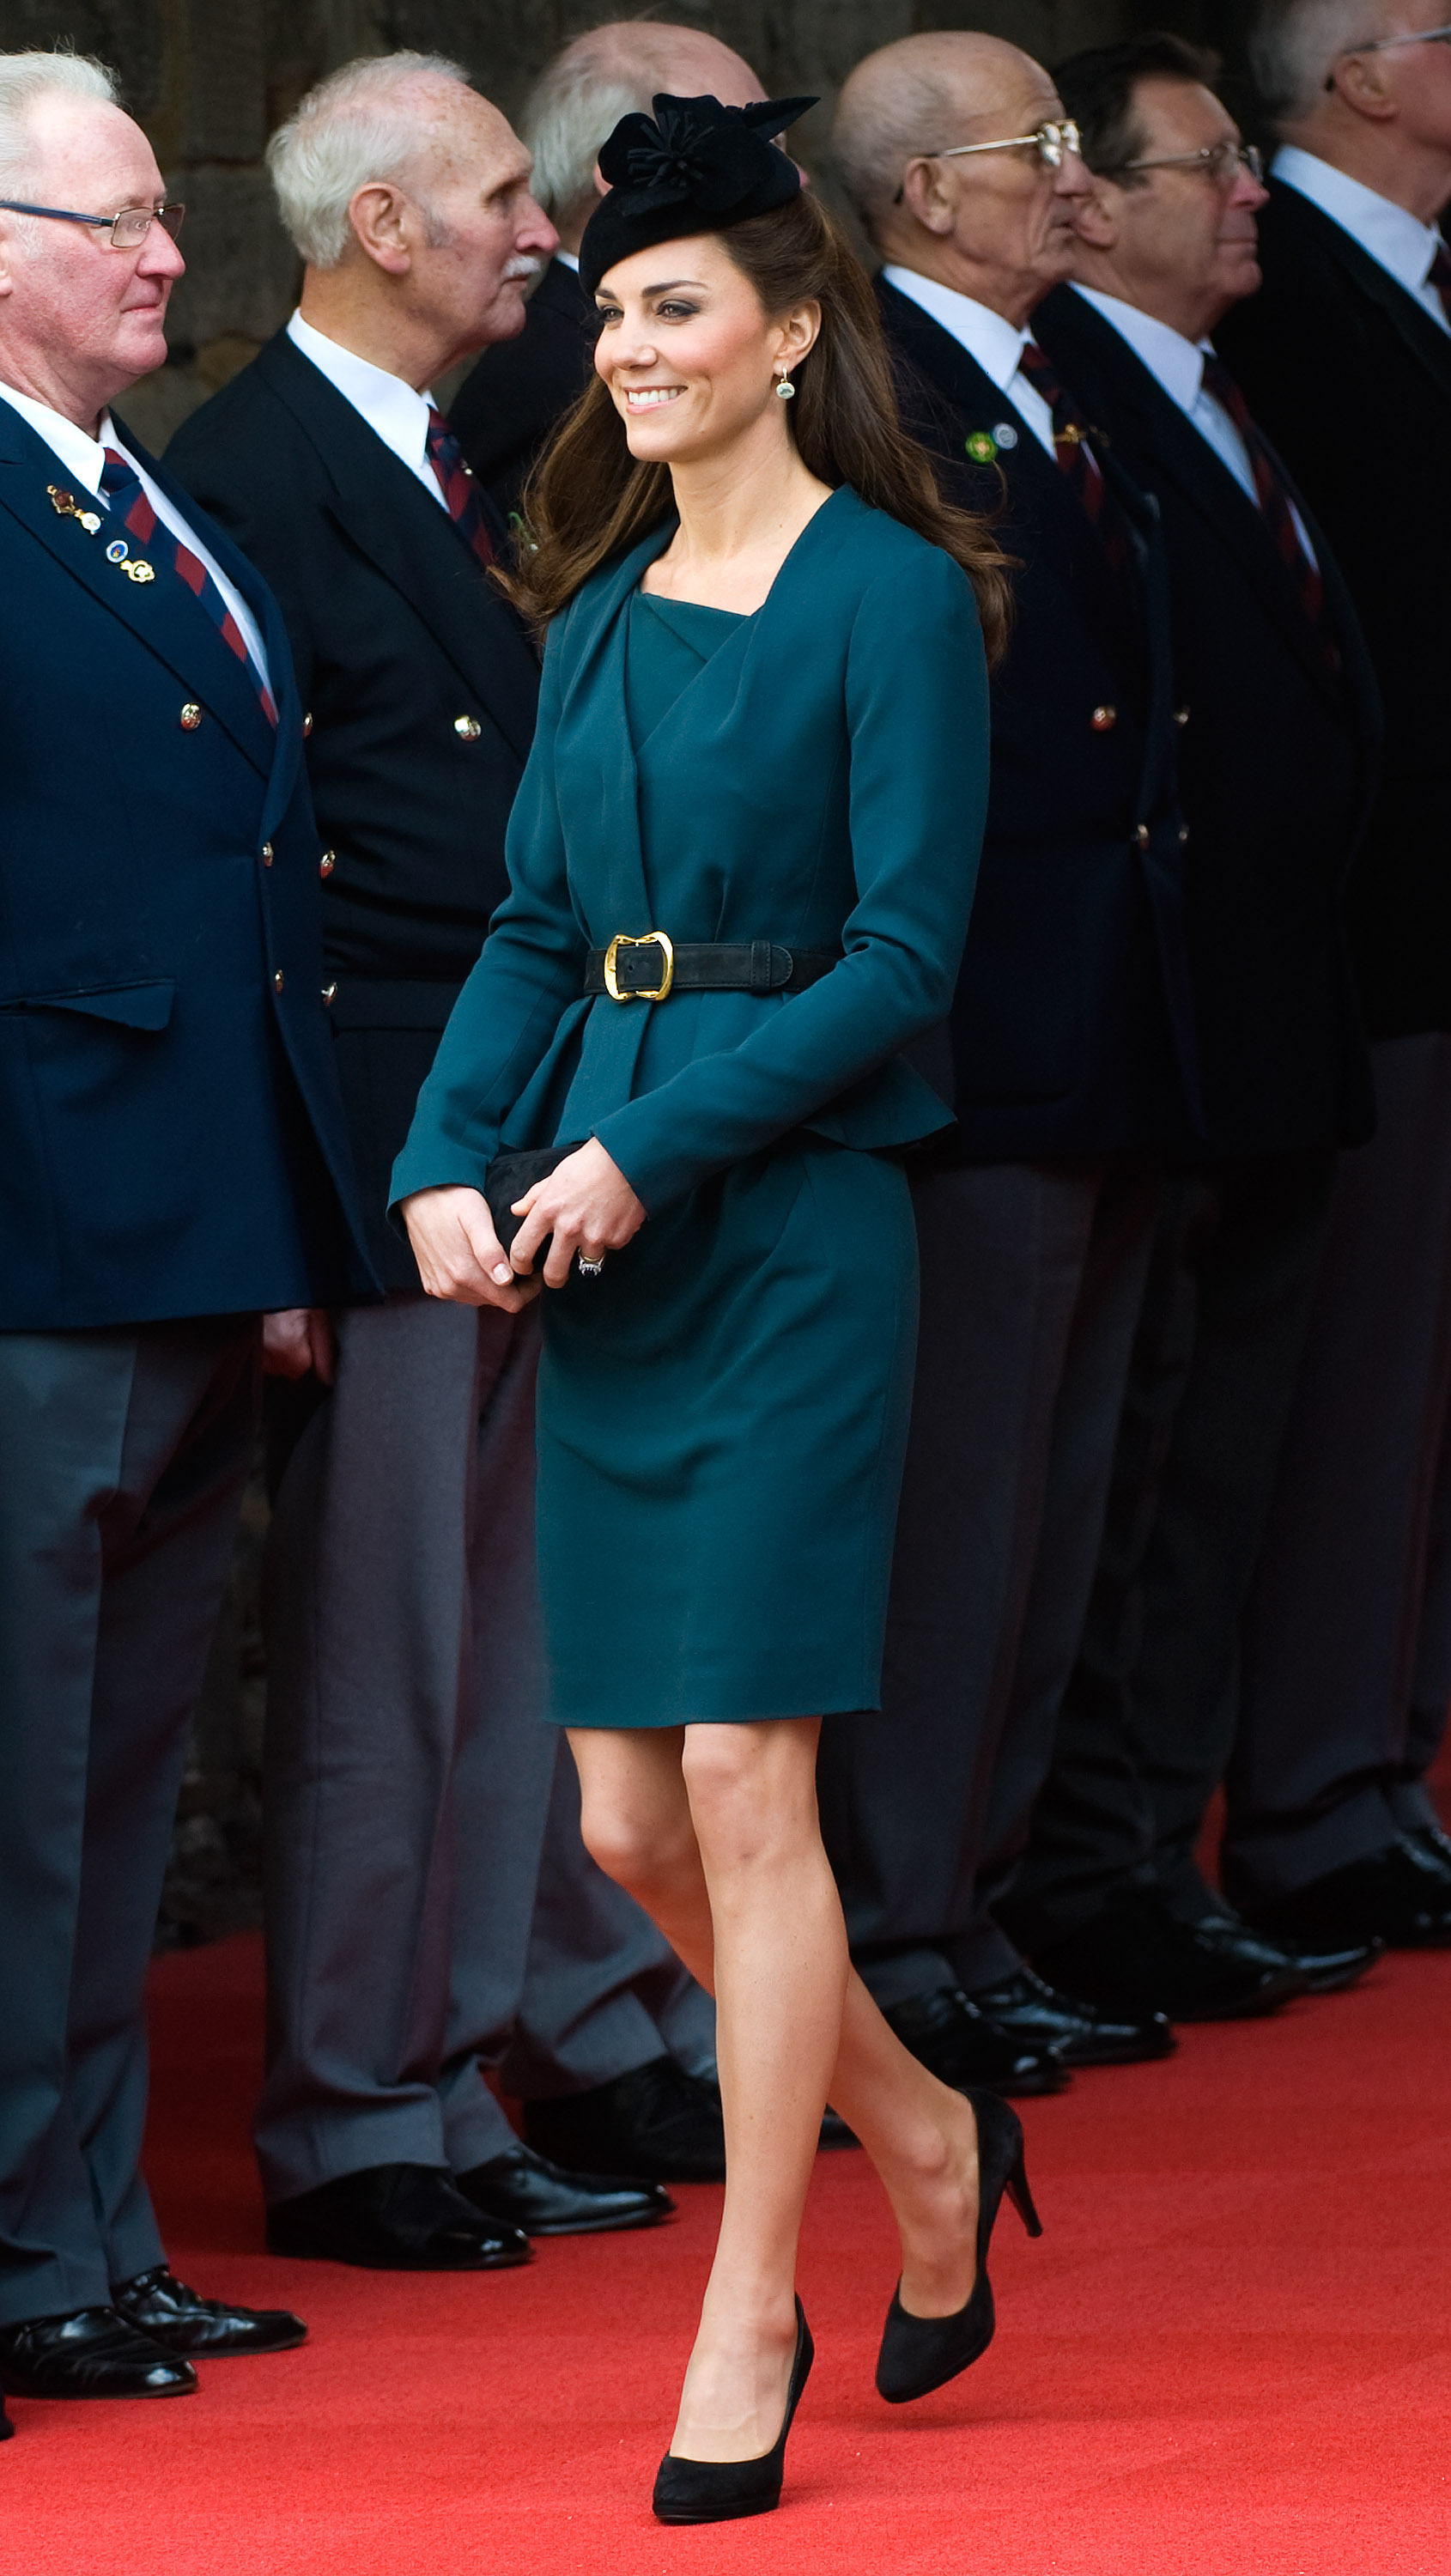 <strong>Touring in Teal</strong>                                   On March 8, 2012, the Duchess accompanied Queen Elizabeth II to Leicester to kick off her Diamond Jubilee tour in the United Kingdom. Designed by LK Bennett, Middleton's jacket and dress reportedly sold out shortly after her appearance in them. The Duchess completed her look with a black fascinator and Epsiode pumps.